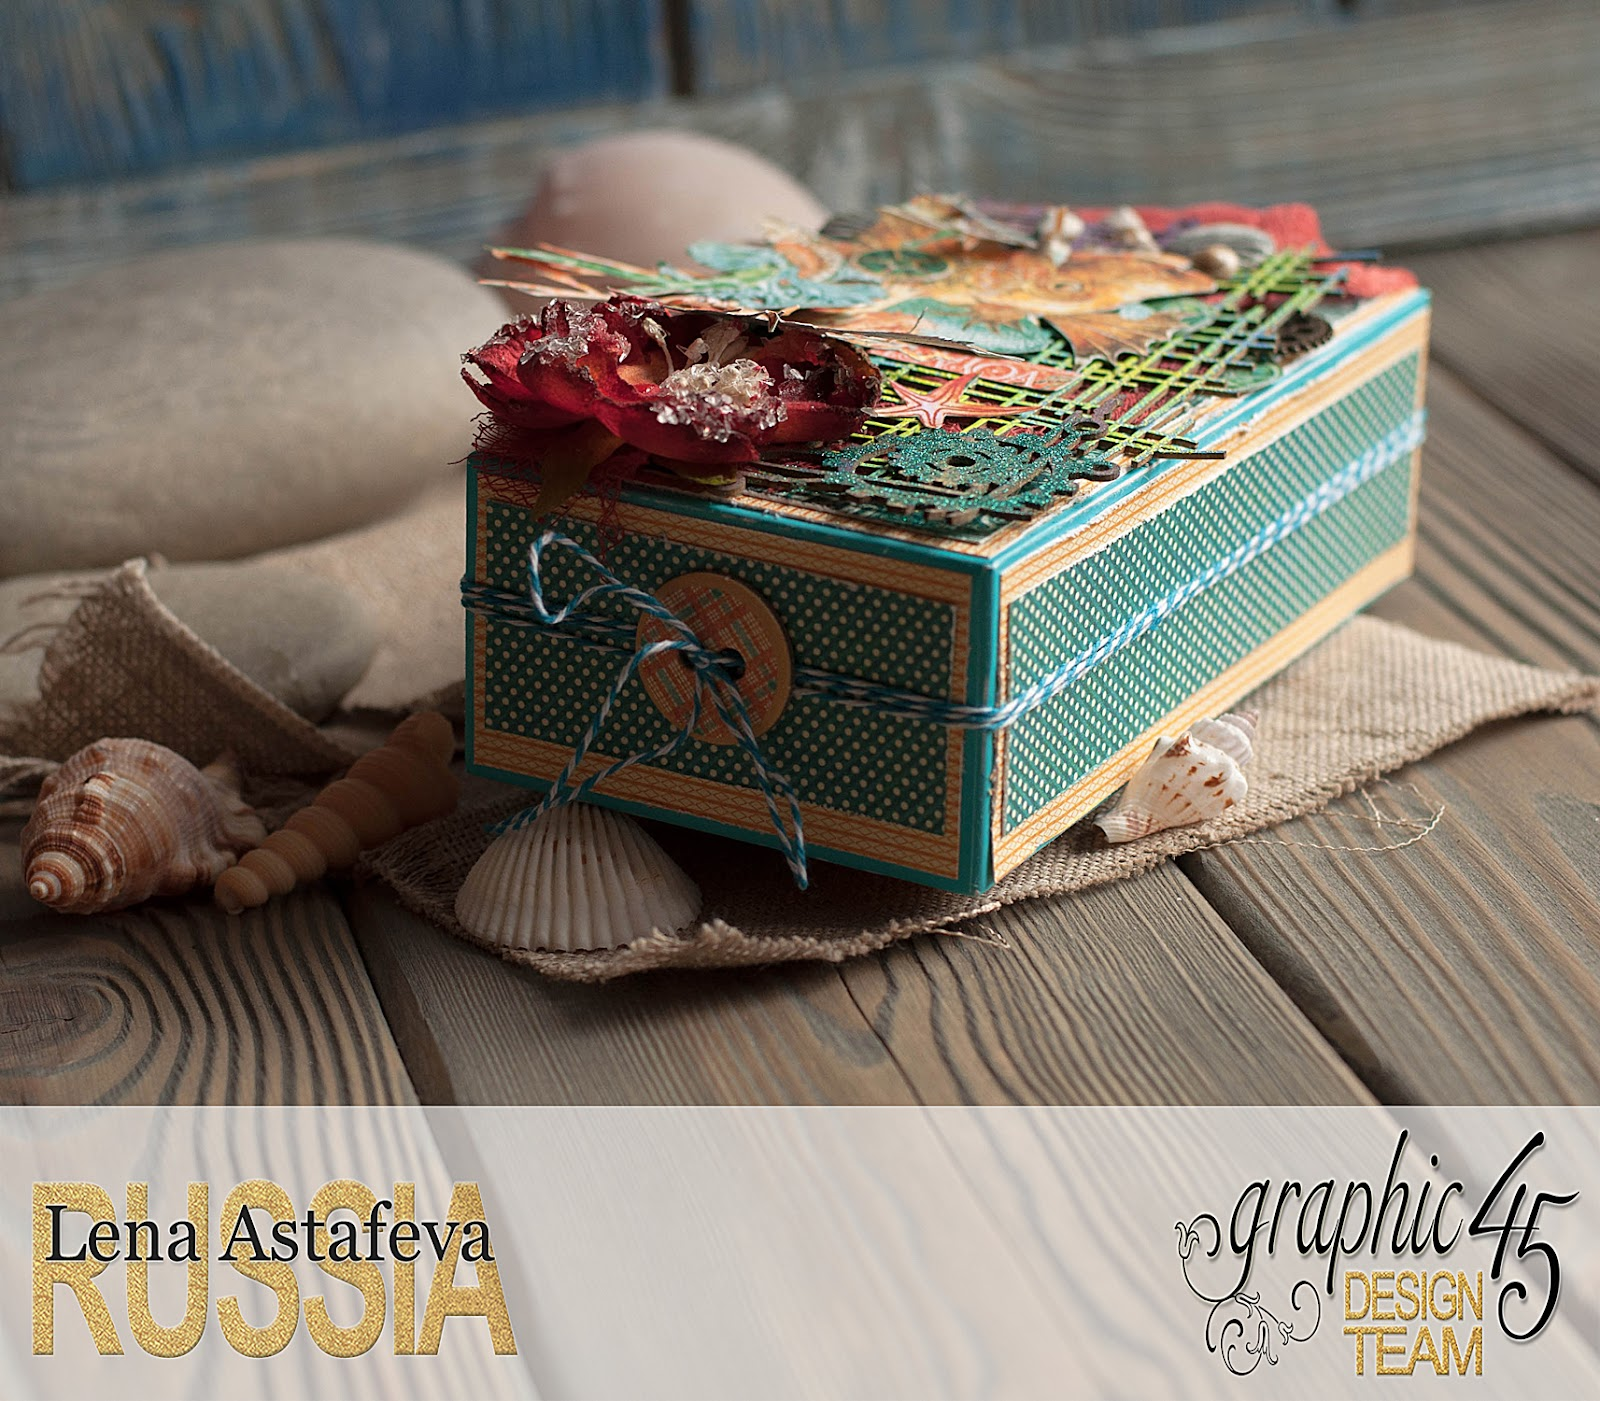 Box-Voyage Beneath the Sea-Graphic 45- by Lena Astafeva-20.jpg